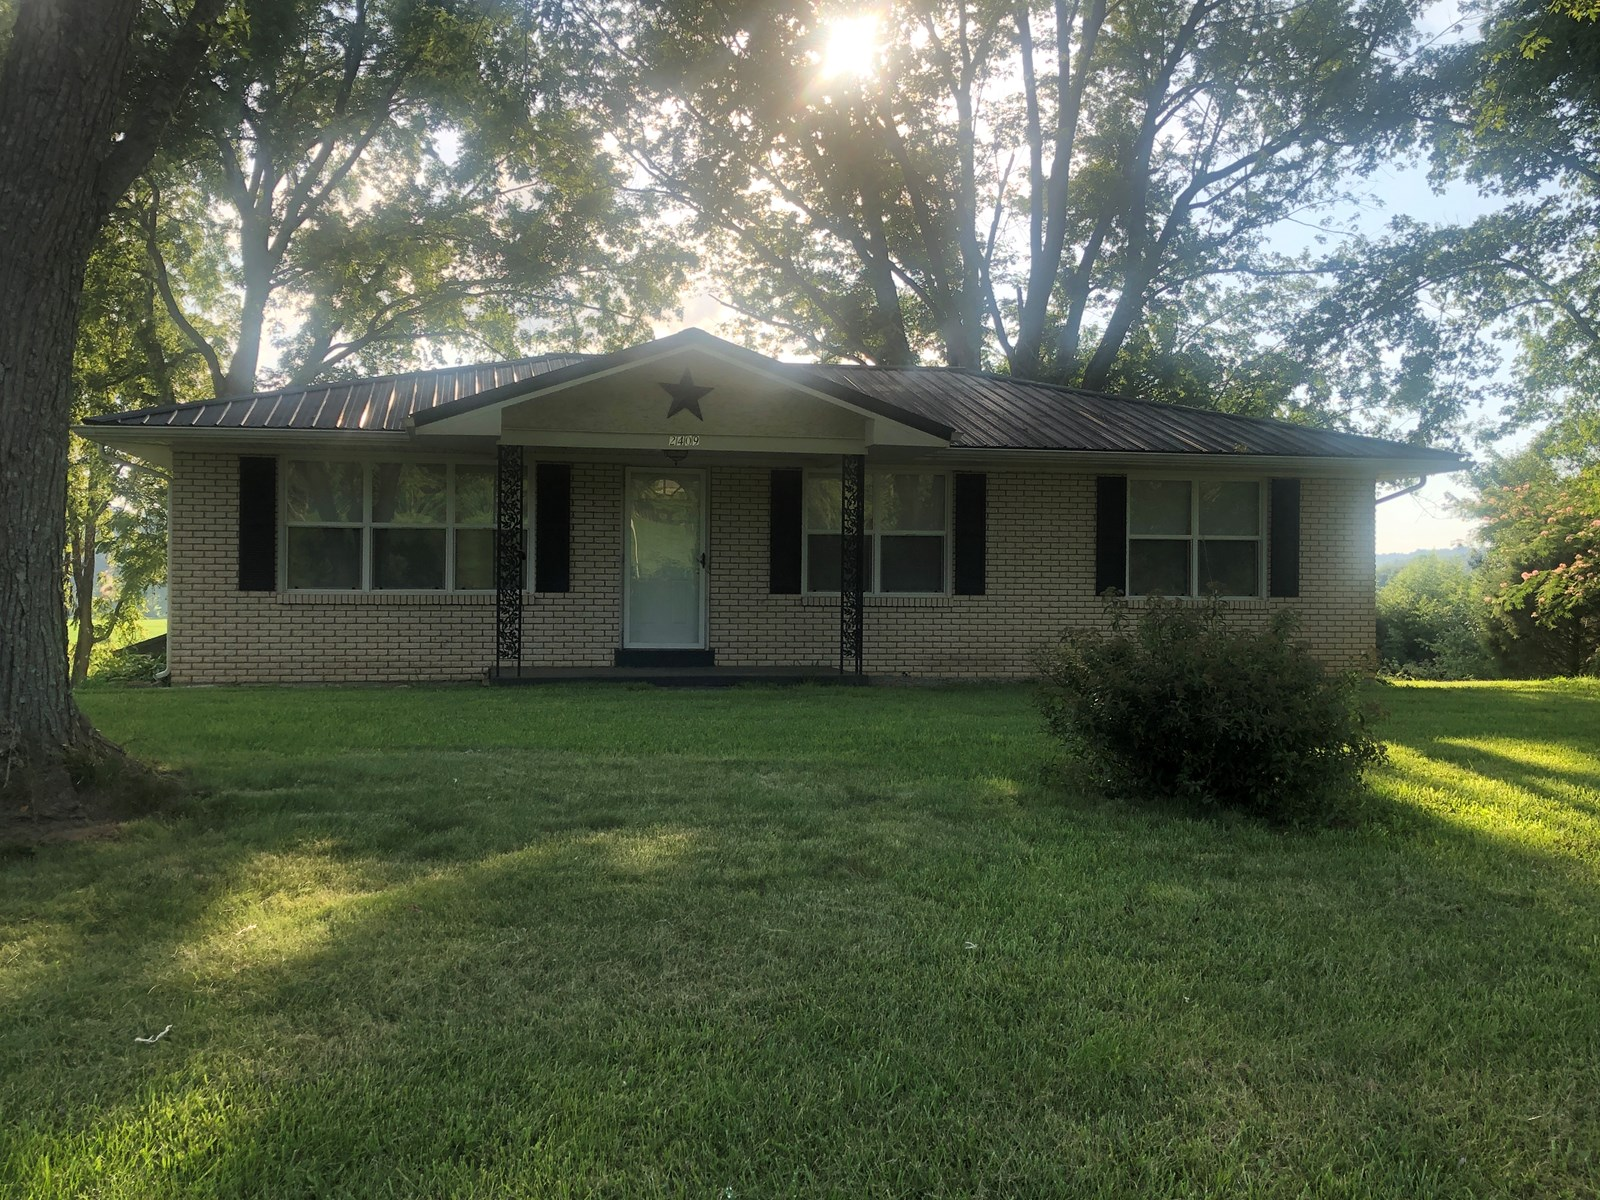 3 Bedroom Country Home for sale near Brownsville Ky.